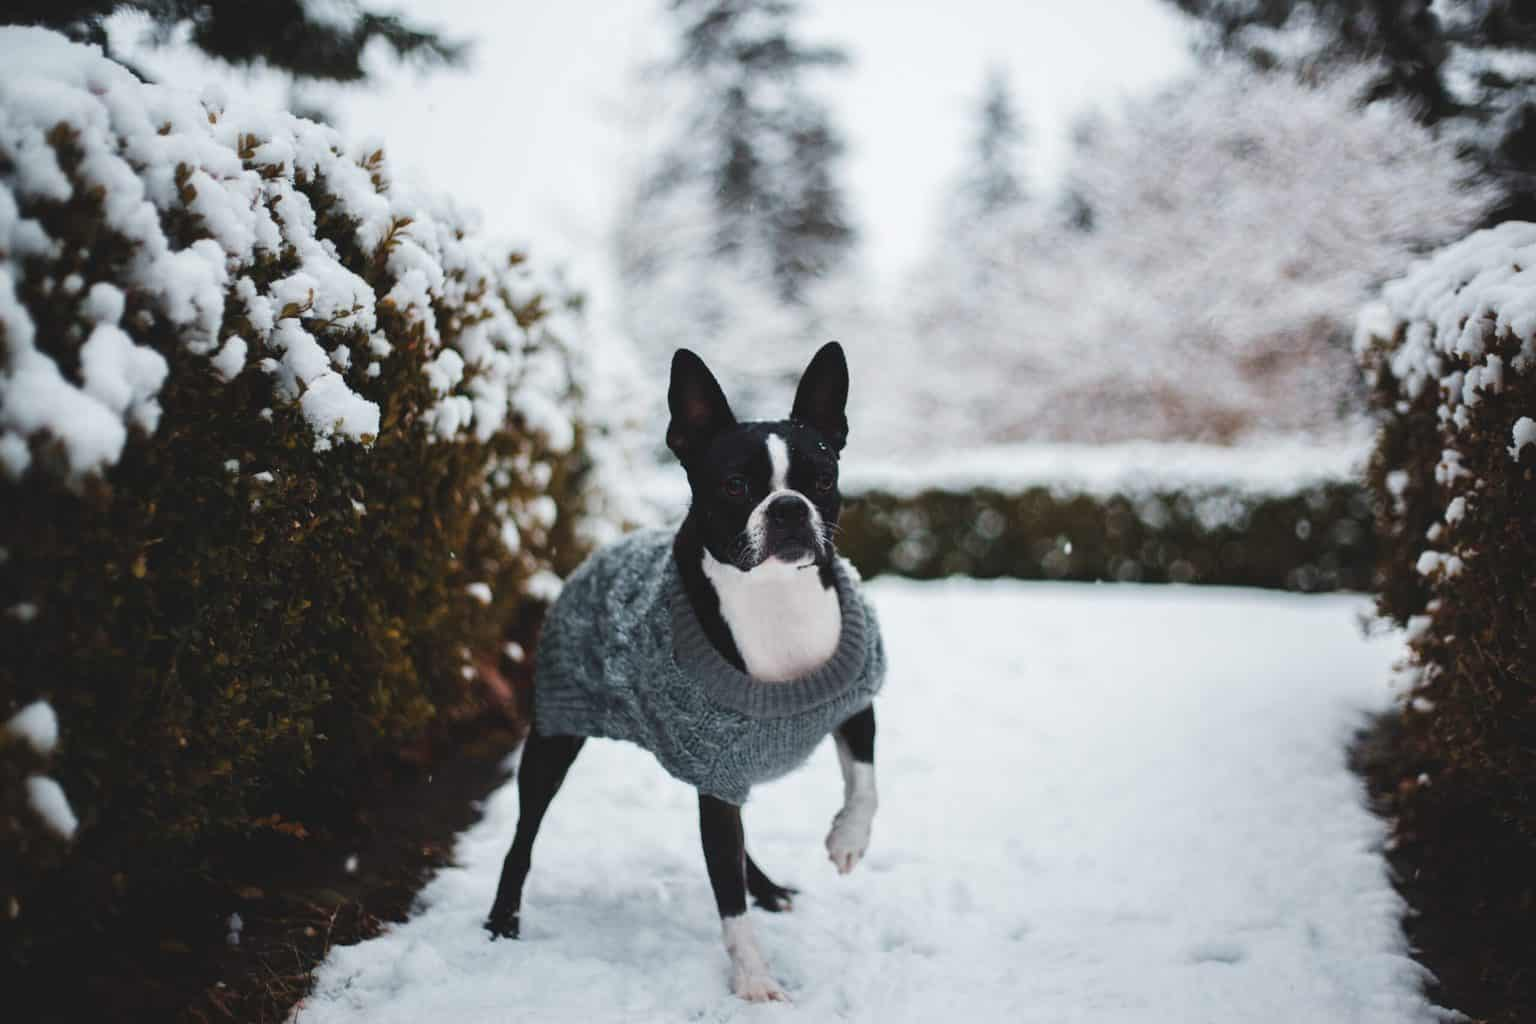 Hyper Boston Terrier playing in the snow